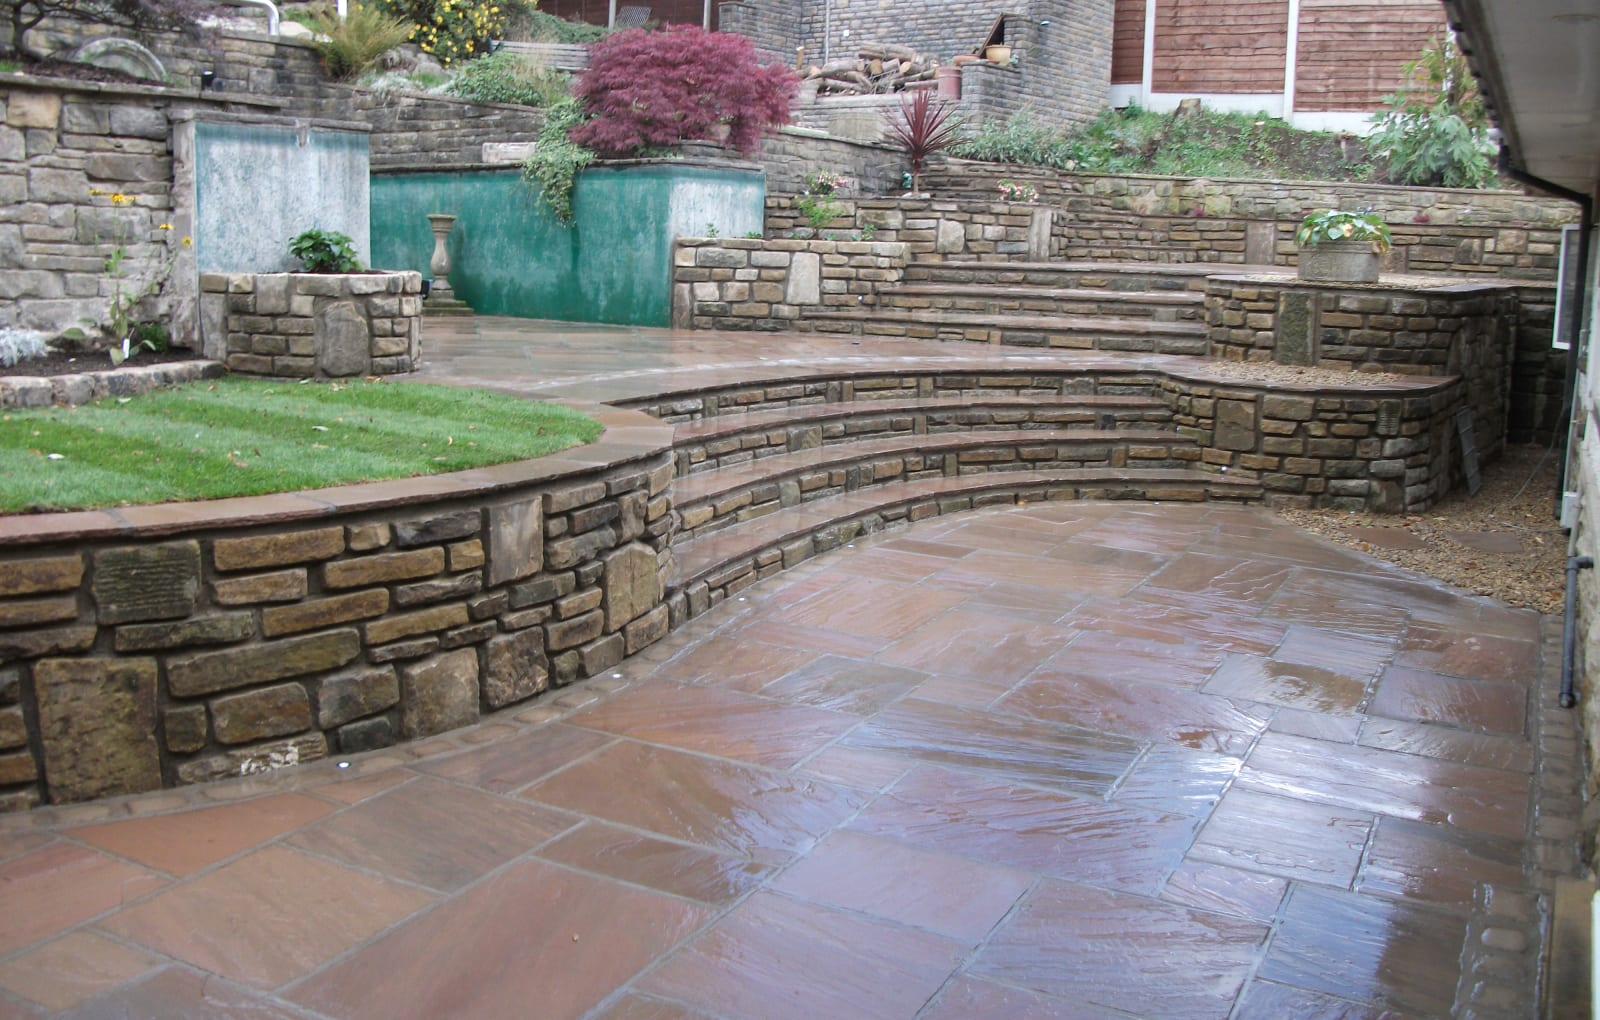 s bennet using mashalls paving